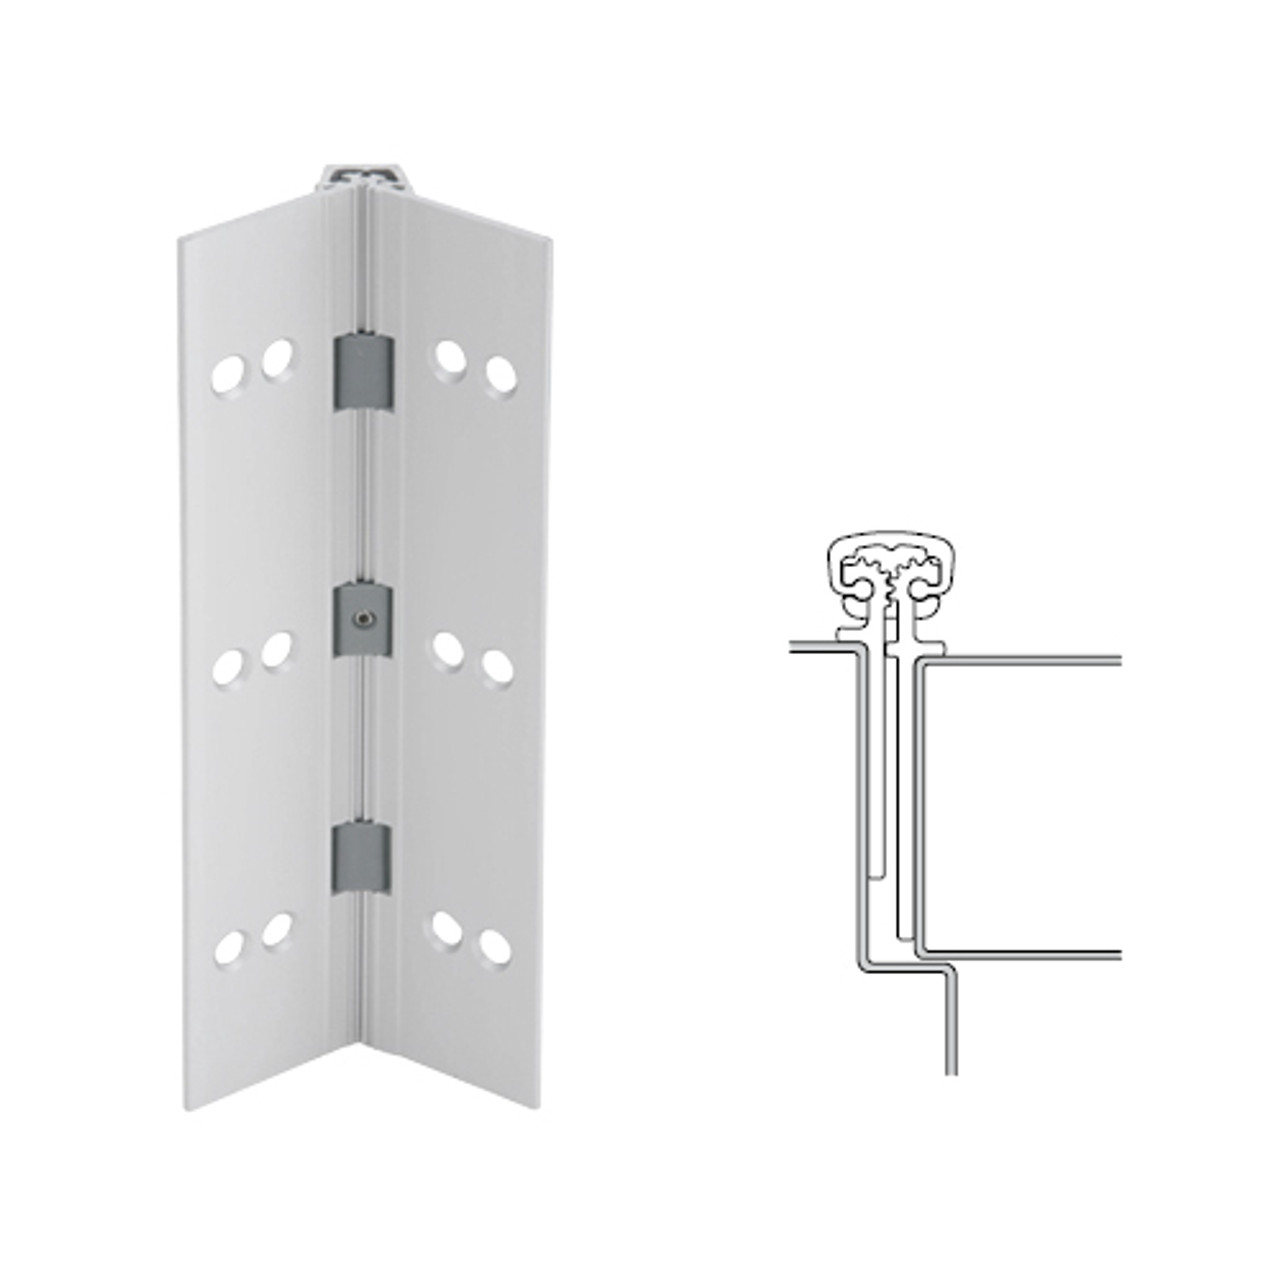 026XY-US28-95-TEKWD IVES Full Mortise Continuous Geared Hinges with Wood Screws in Satin Aluminum